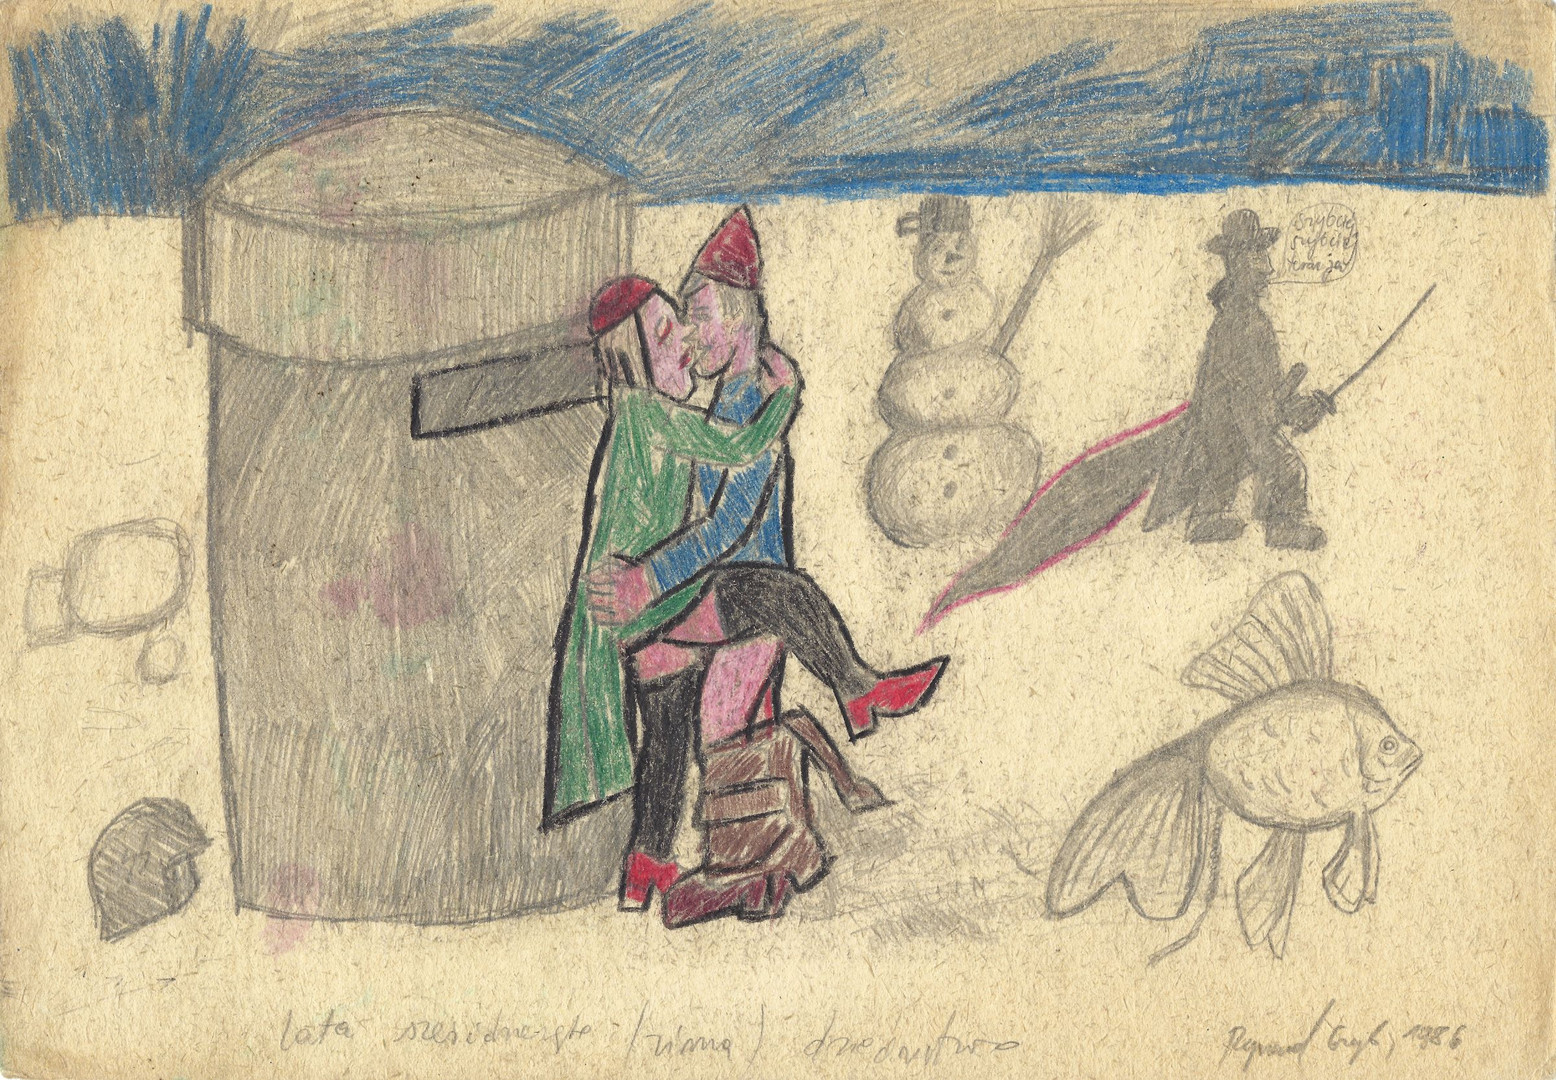 """Sixties (winter) - heritage"", 1986, pencil and crayon on paper, 21 x 29,7 cm"